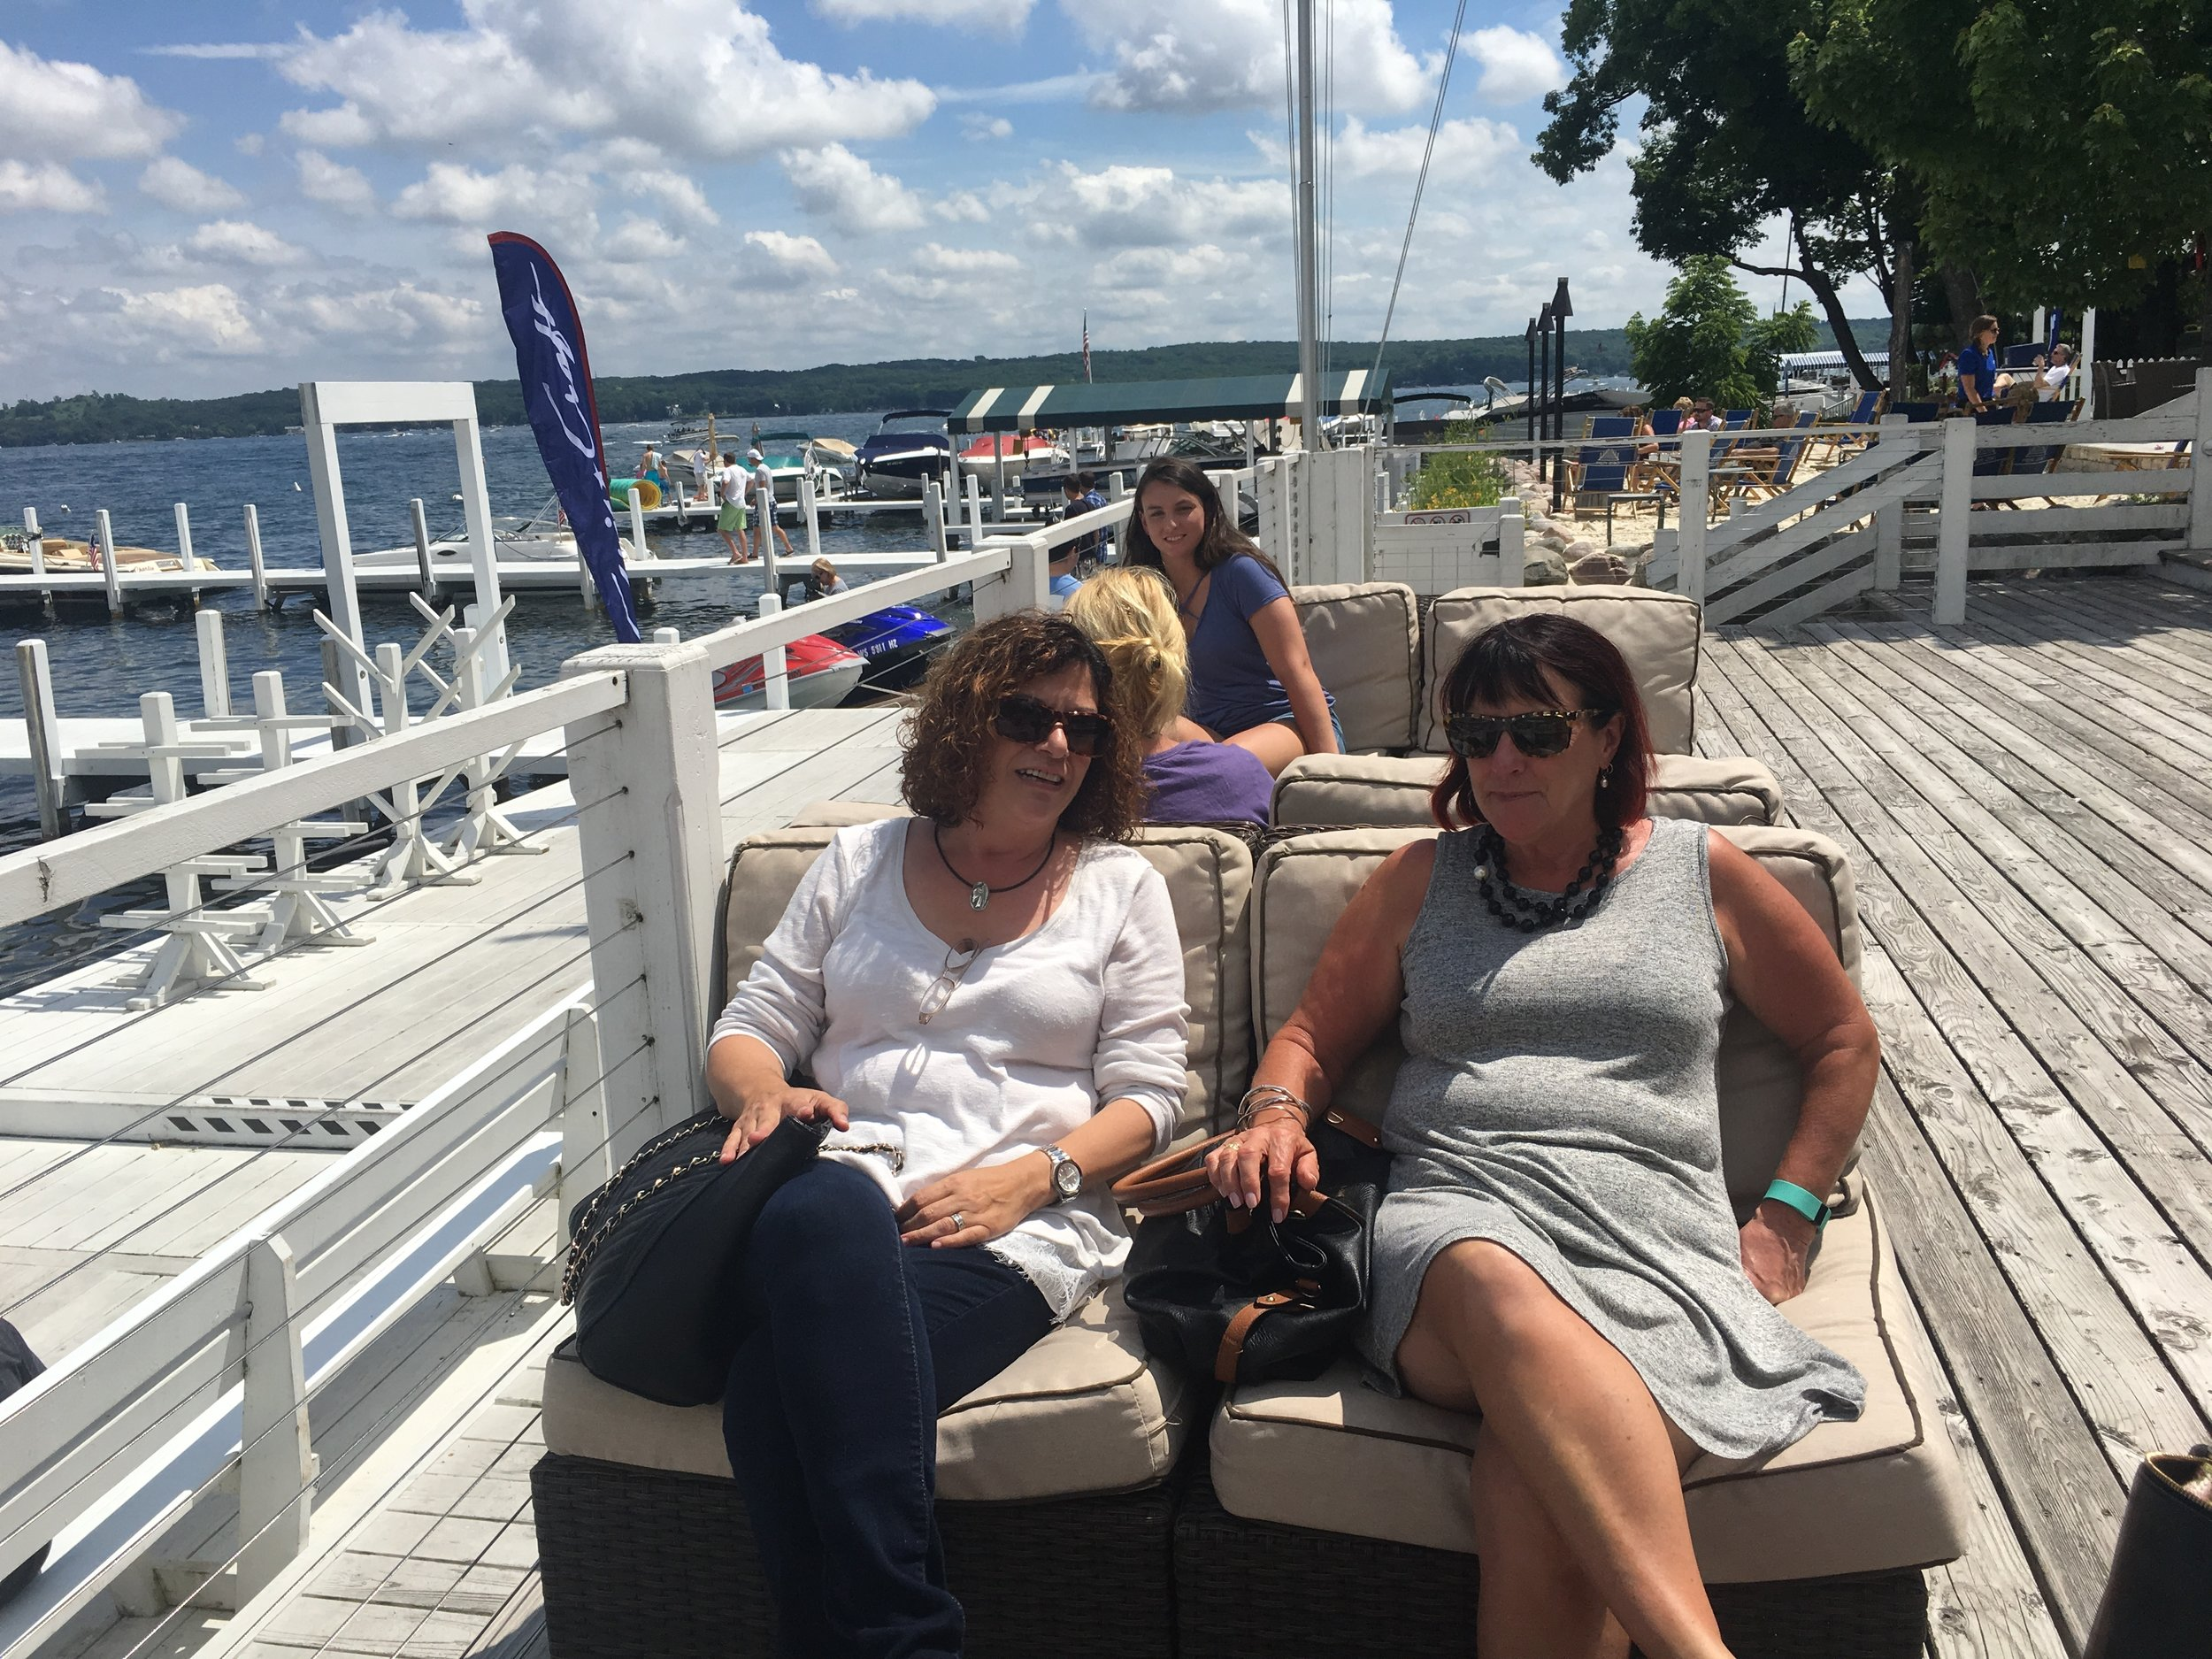 - Relaxing after lunch at The Pier, Lake Geneva